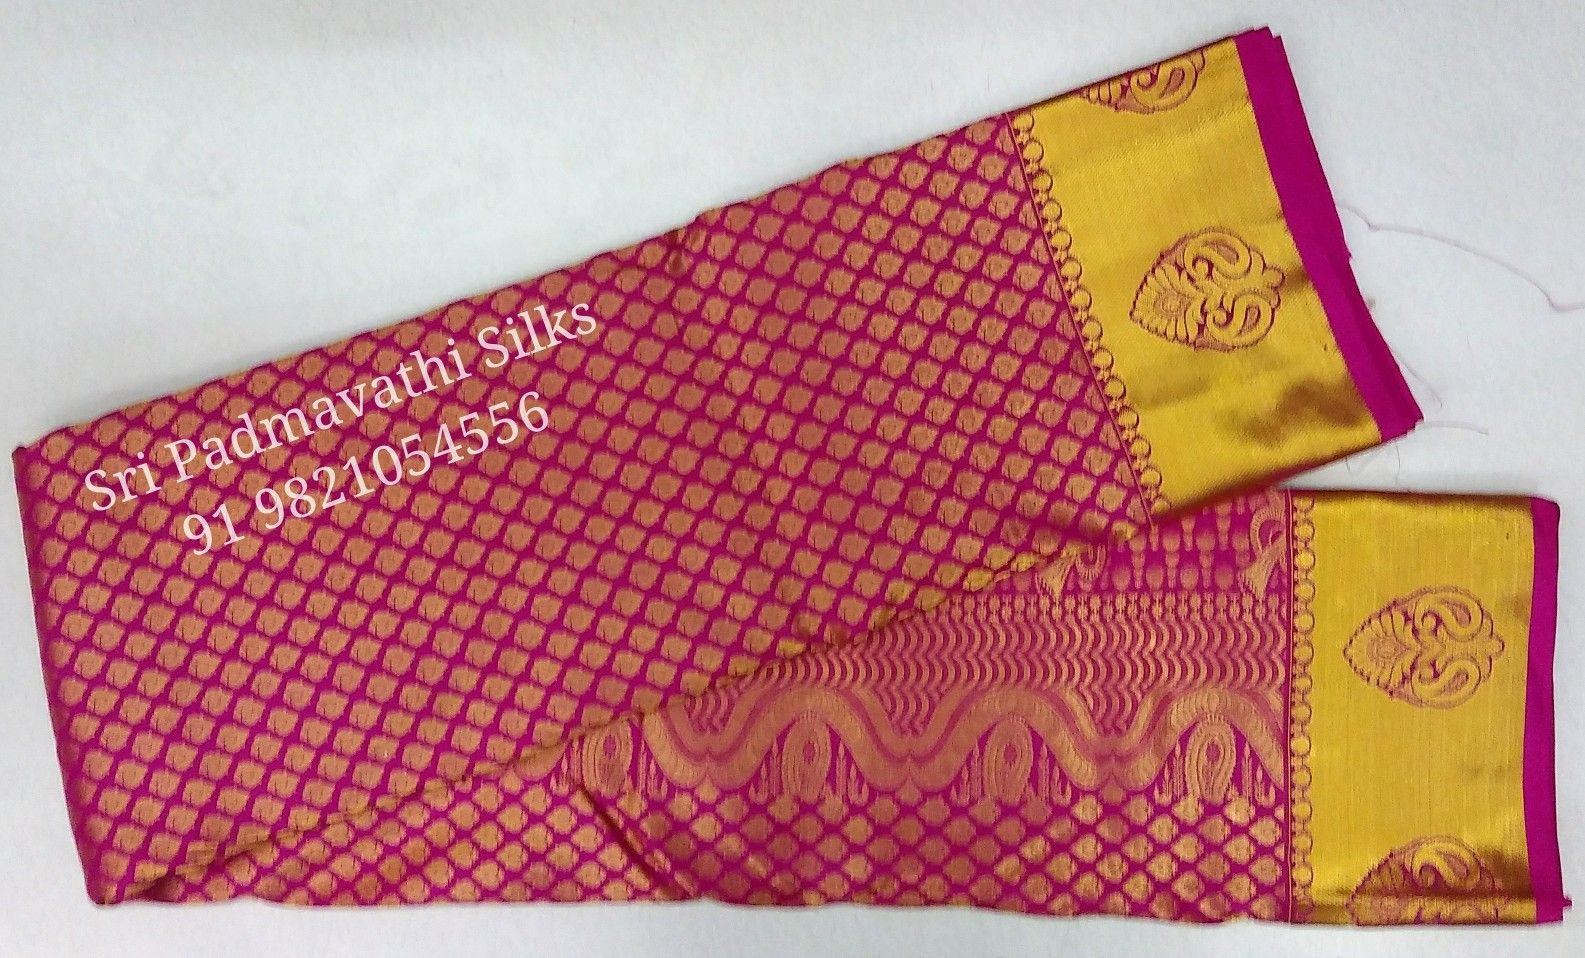 Pink It Up With Kancheepuram Handloom Pure Silk Bridal Brocade Sarees On Your Special Day G Wedding Acceptance Card Wedding Cards Printing Wedding Invitations